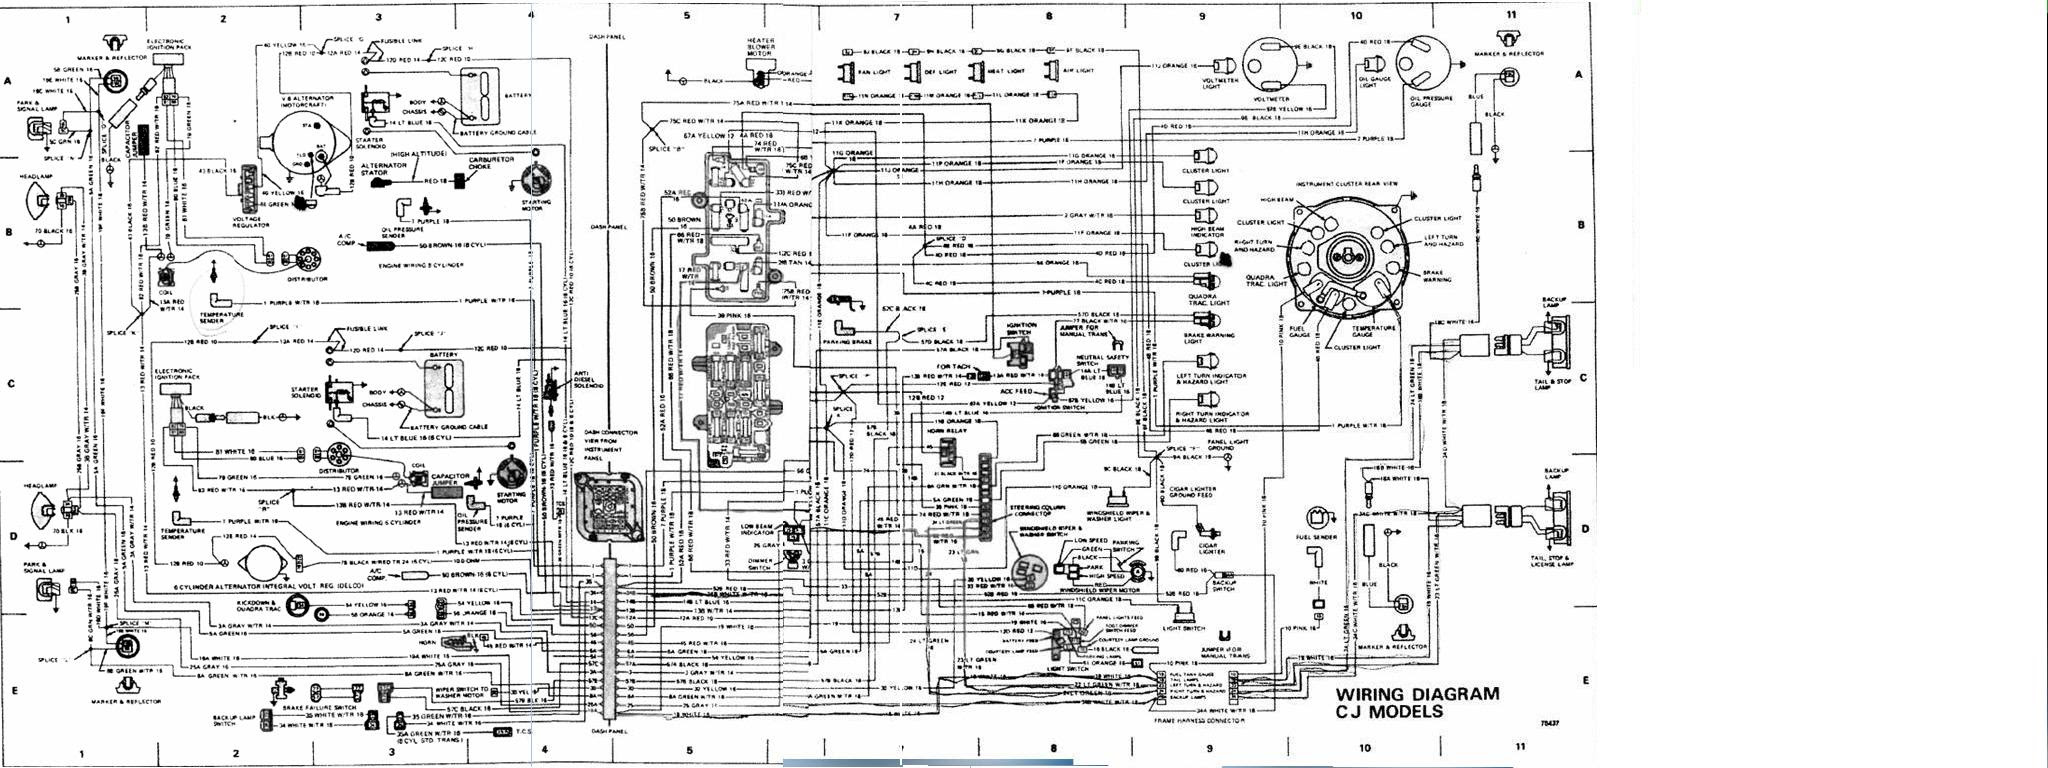 81 Jeep Cj7 Wiring - Wiring Diagram NetworksWiring Diagram Networks - blogger